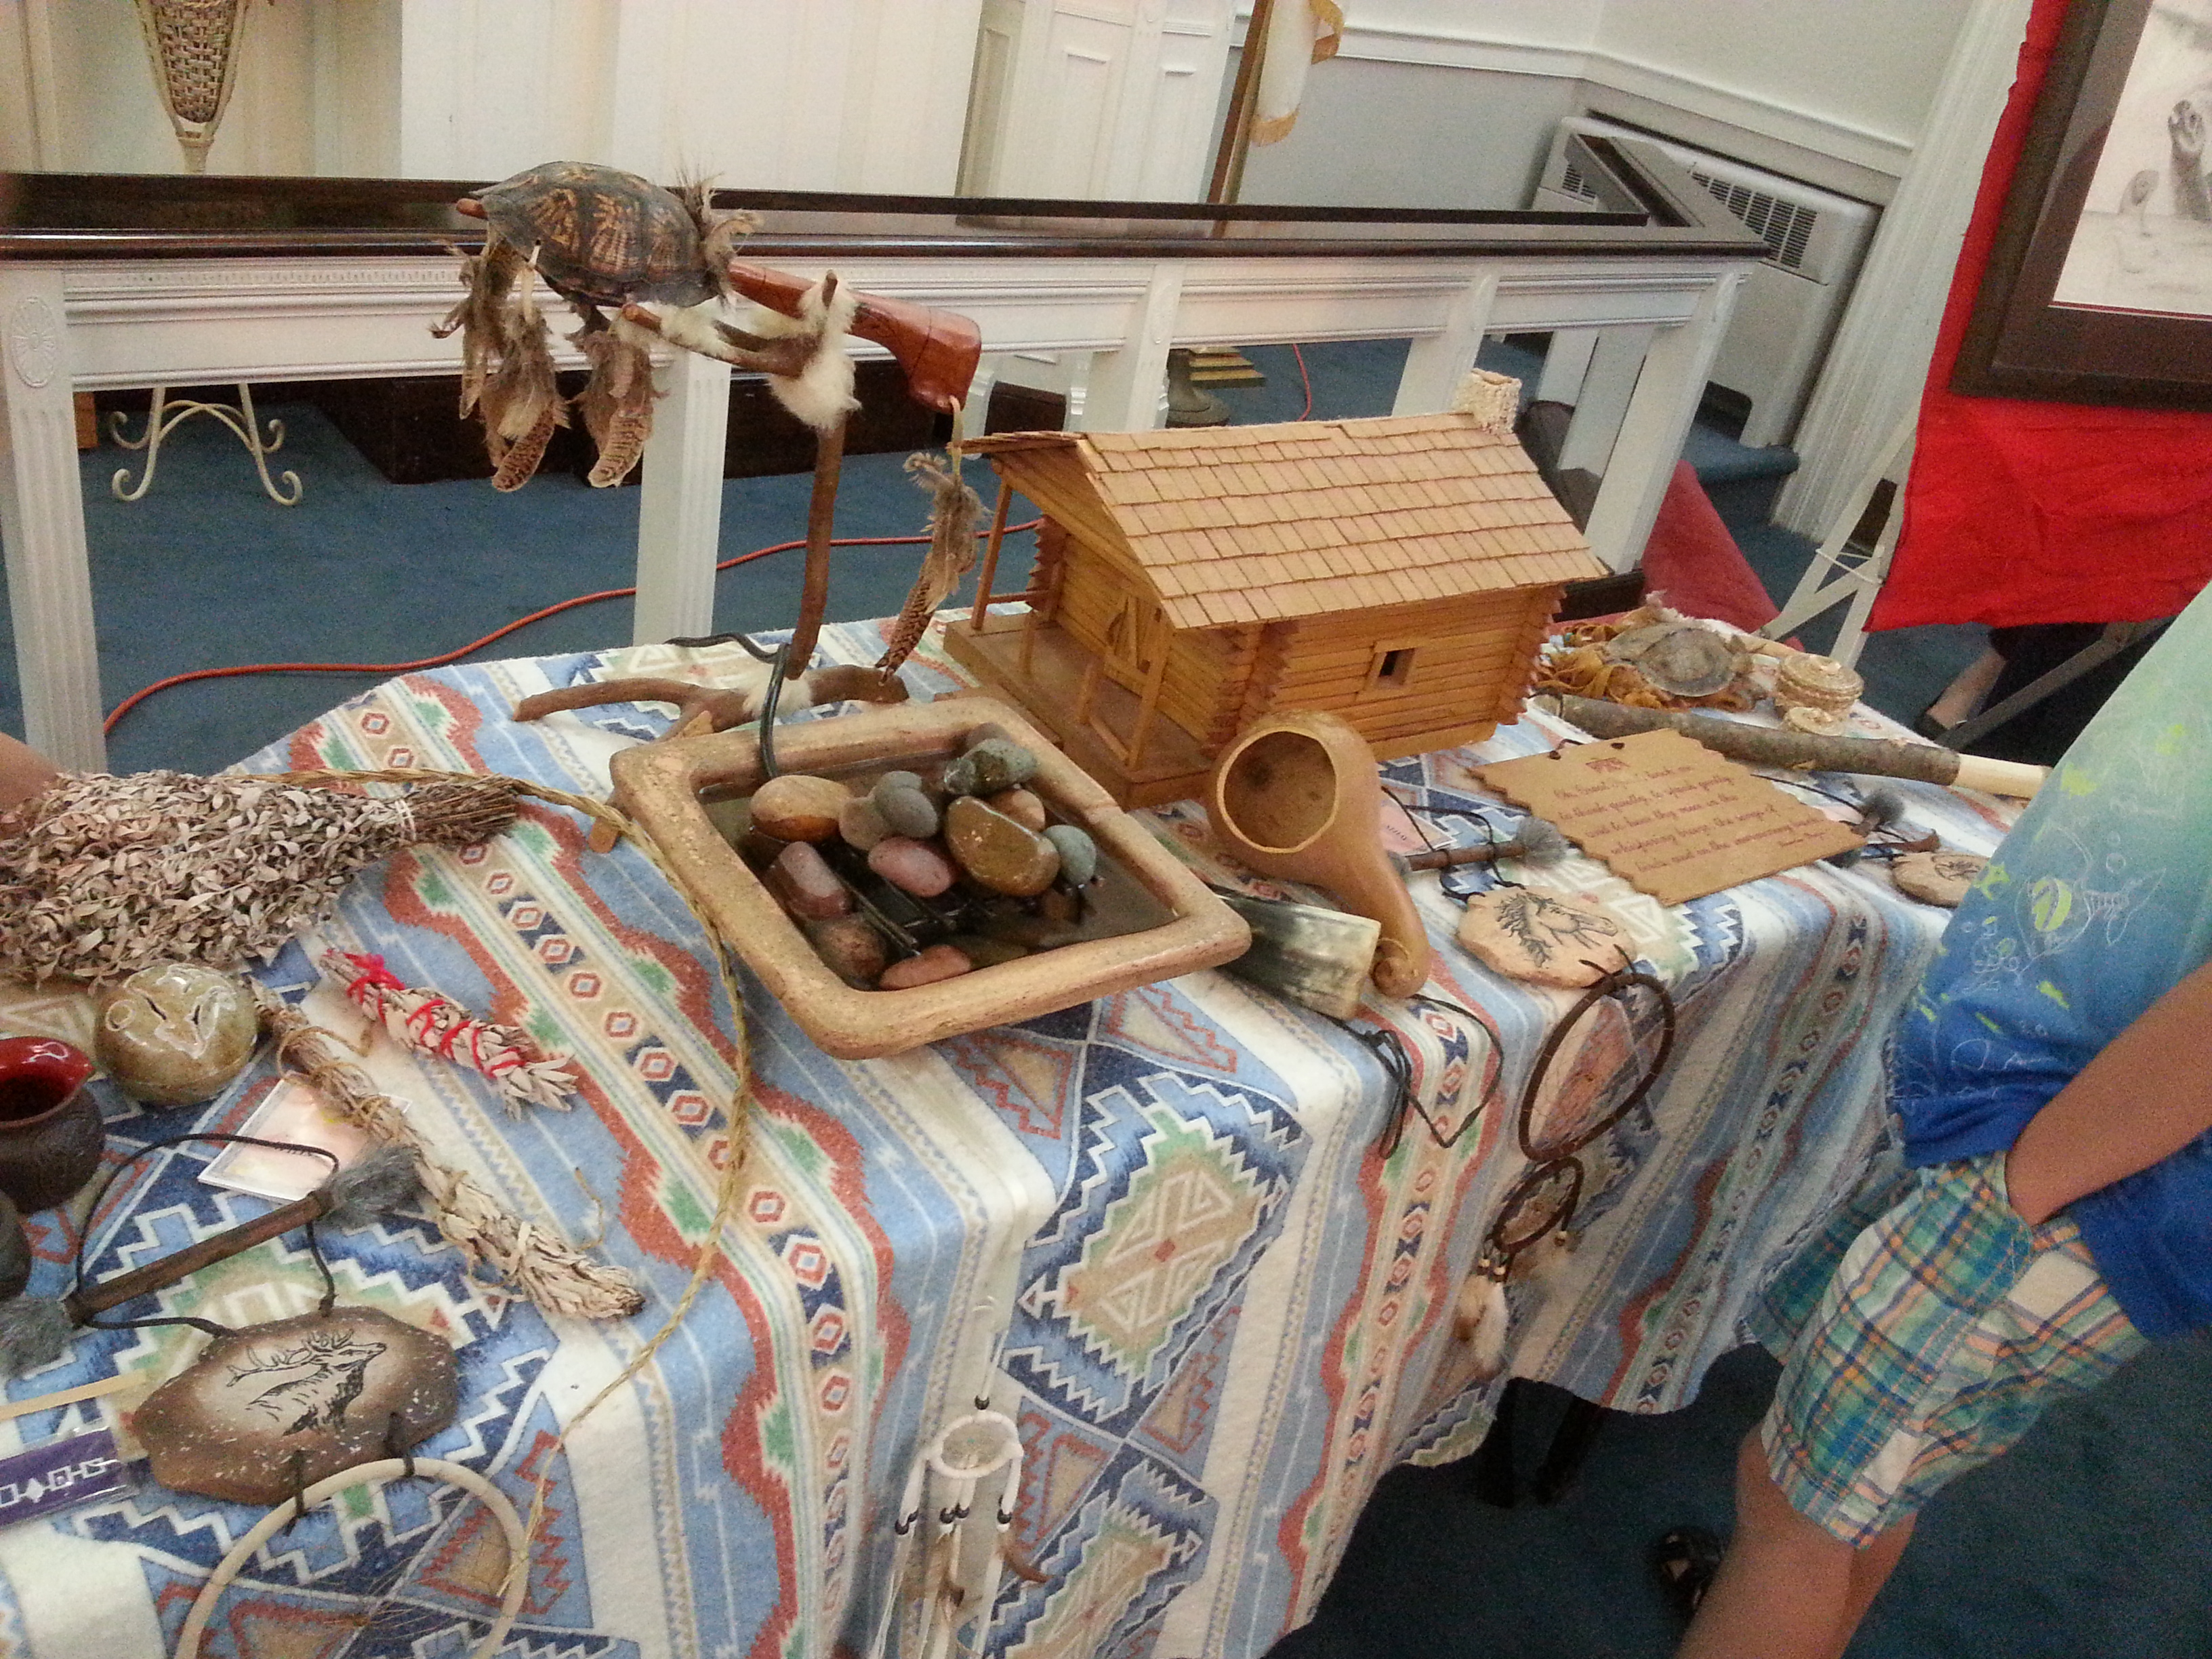 Native American artifacts displayed at Native American Cultural Celebration (May 25, 2014)